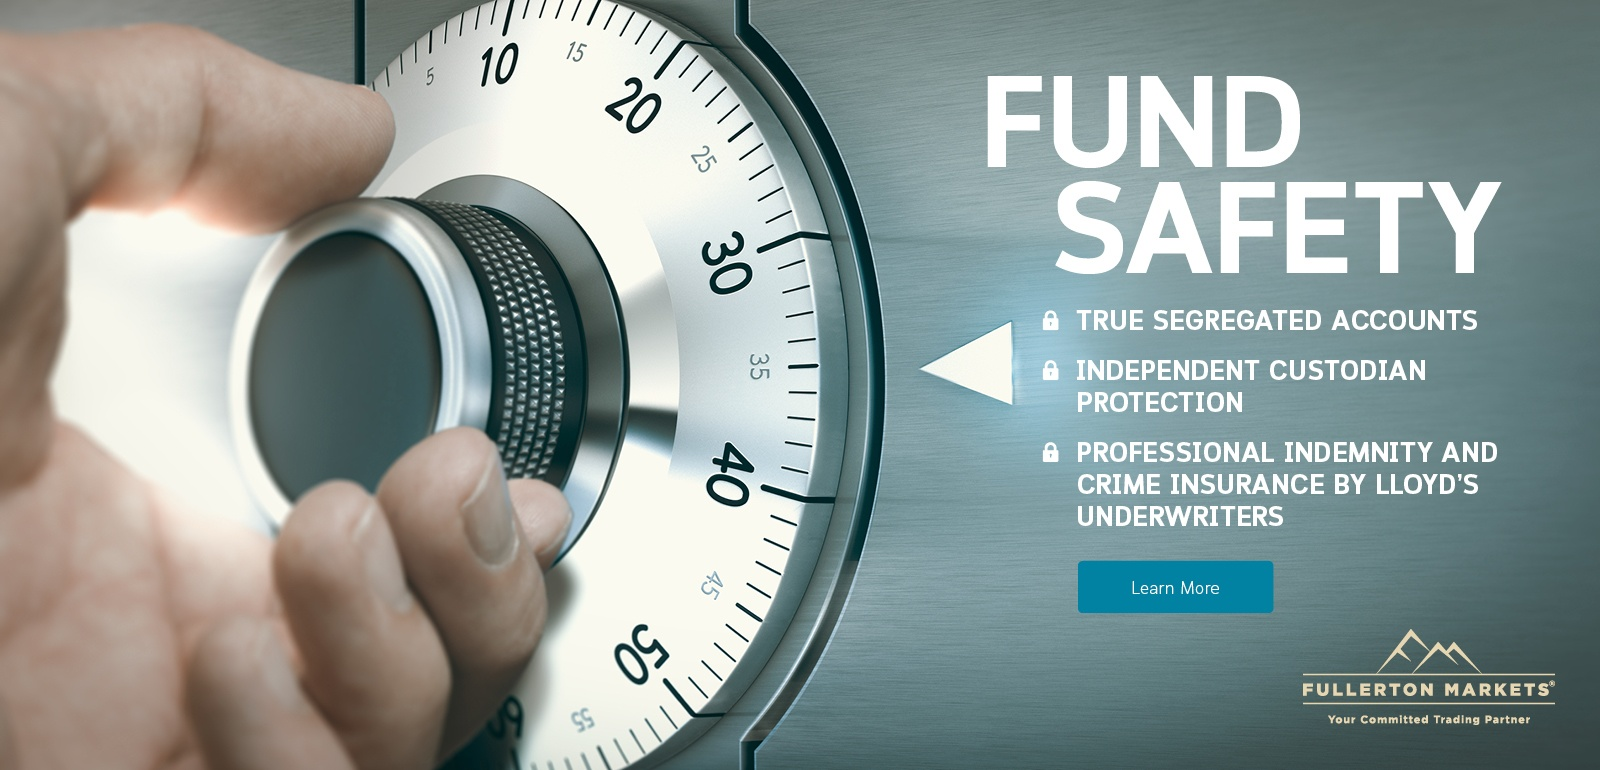 FundSafety_EN